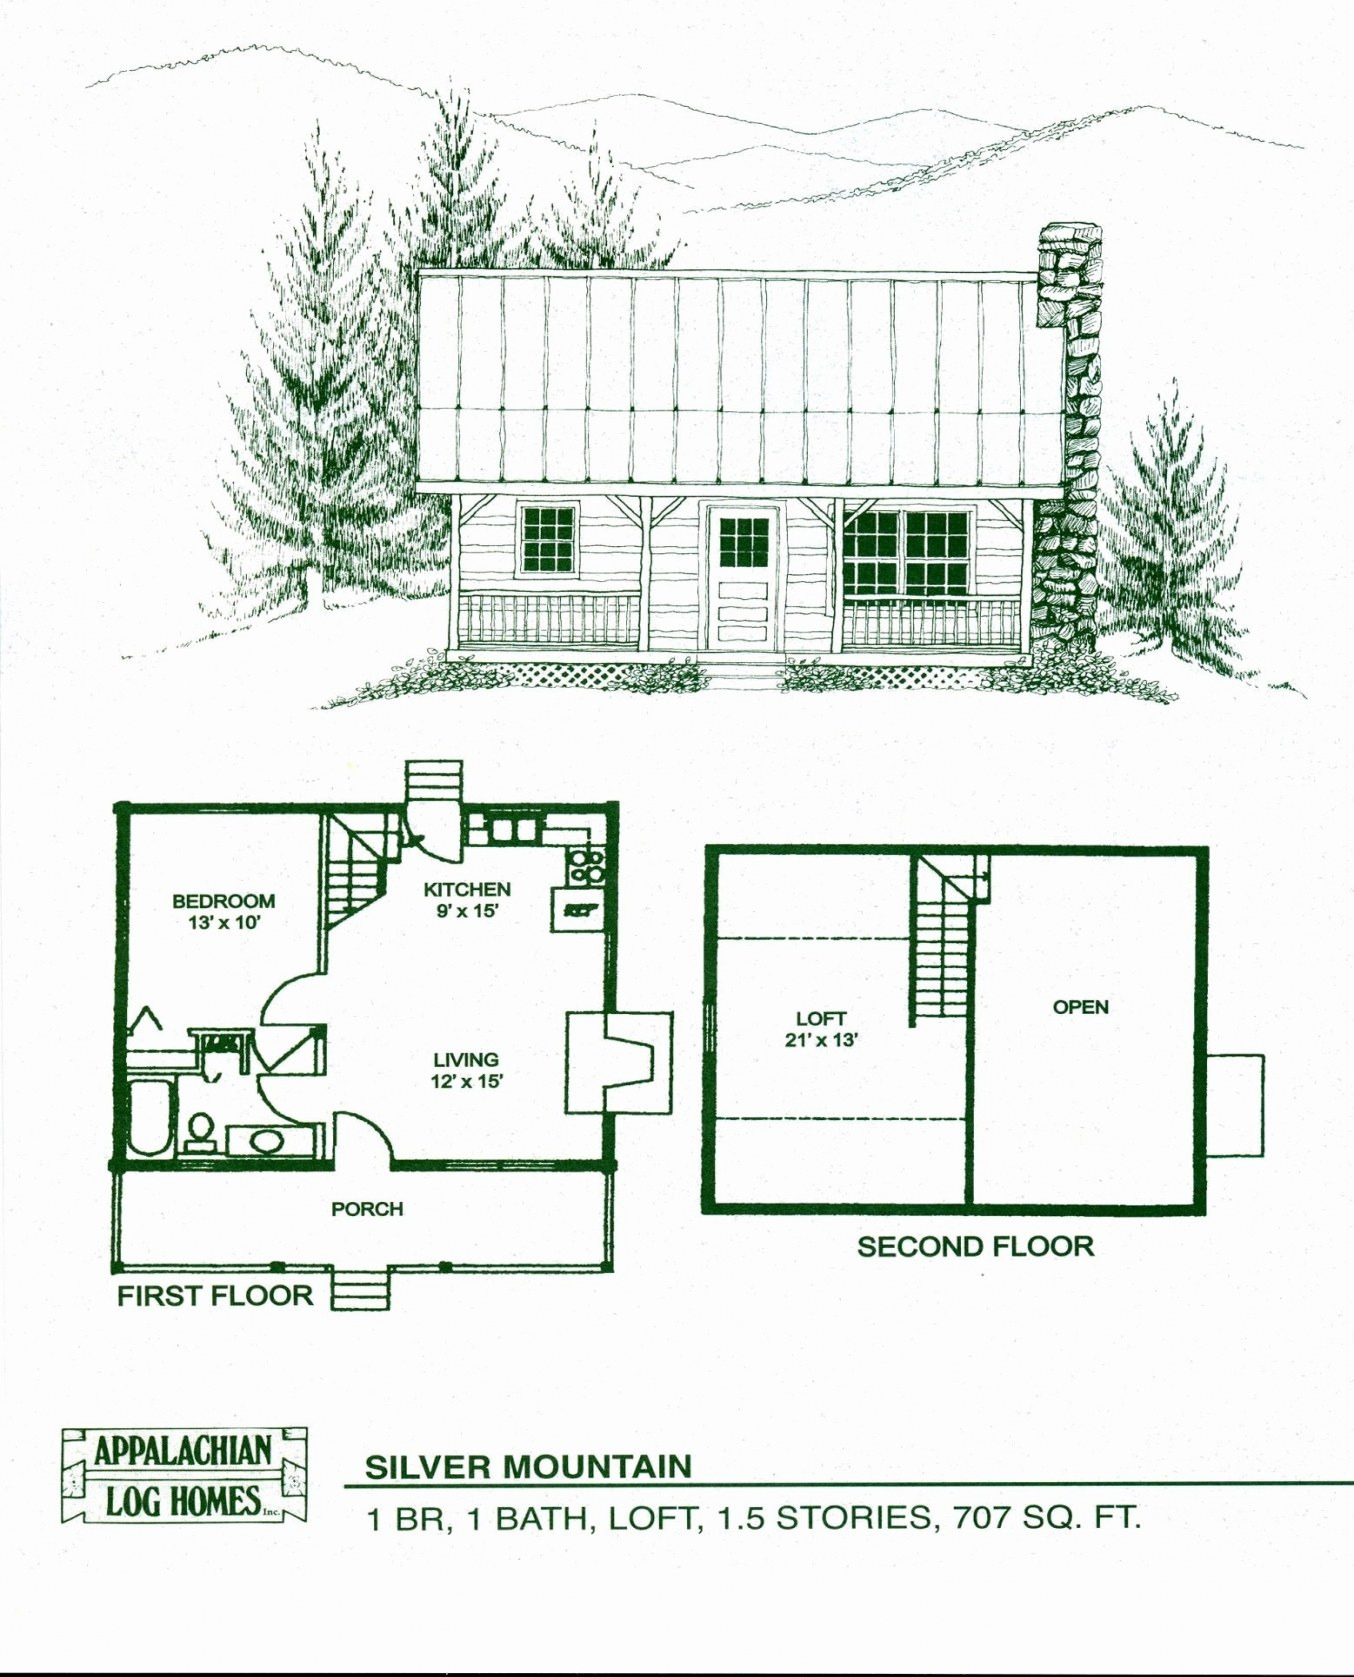 House Plan Images Free Luxury Diy Picture Frame Small A Frame House Plans Free Awesome How